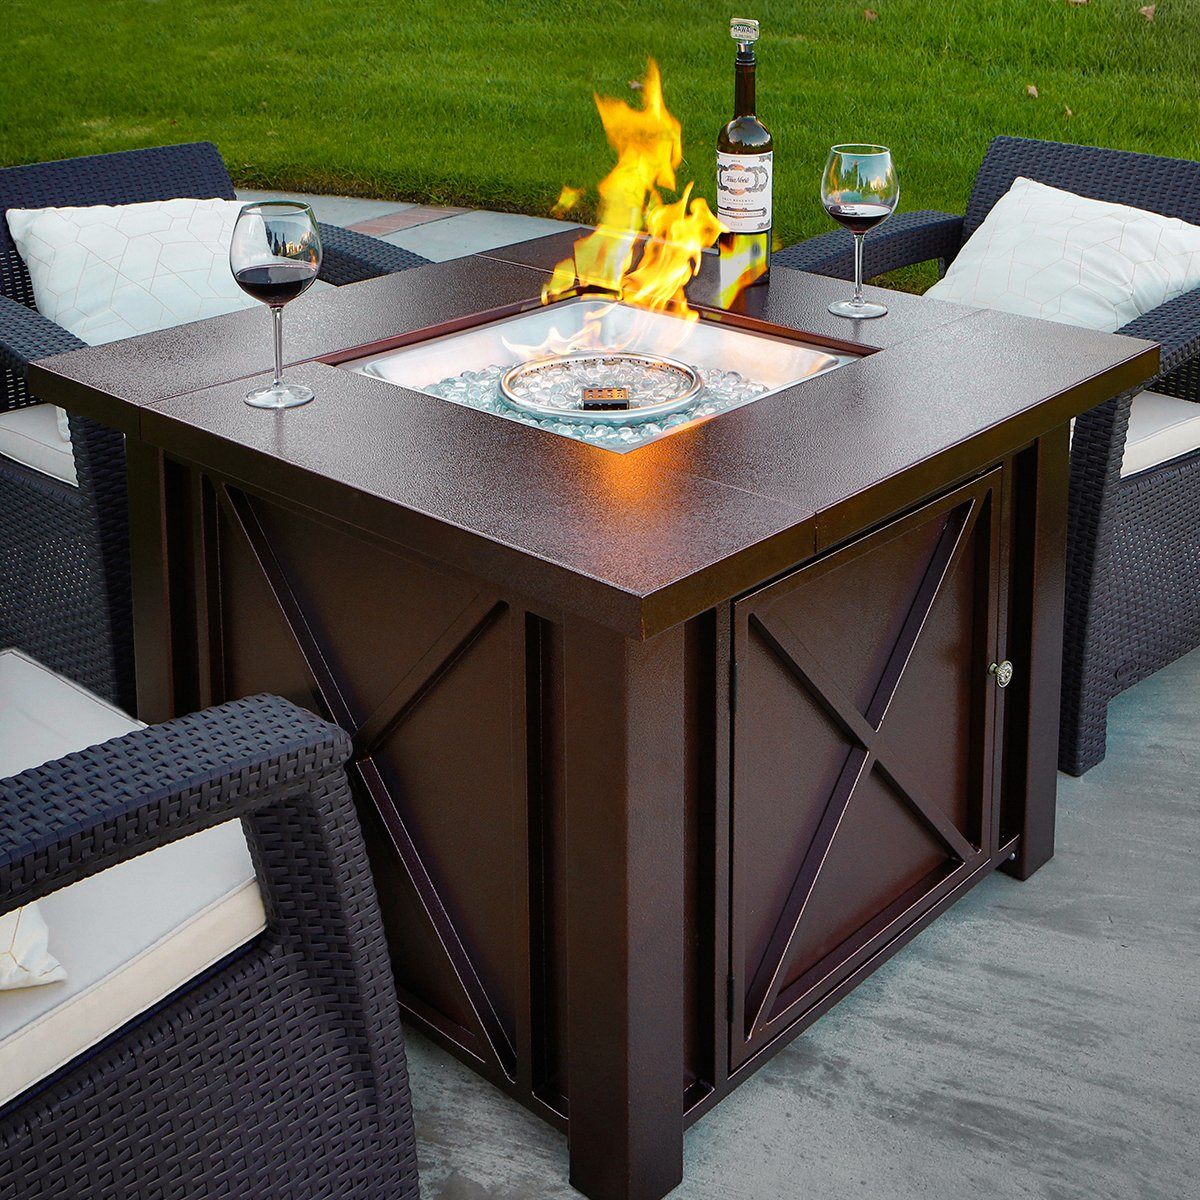 XtremepowerUS Out door Patio Heaters LPG Propane Fire Pit